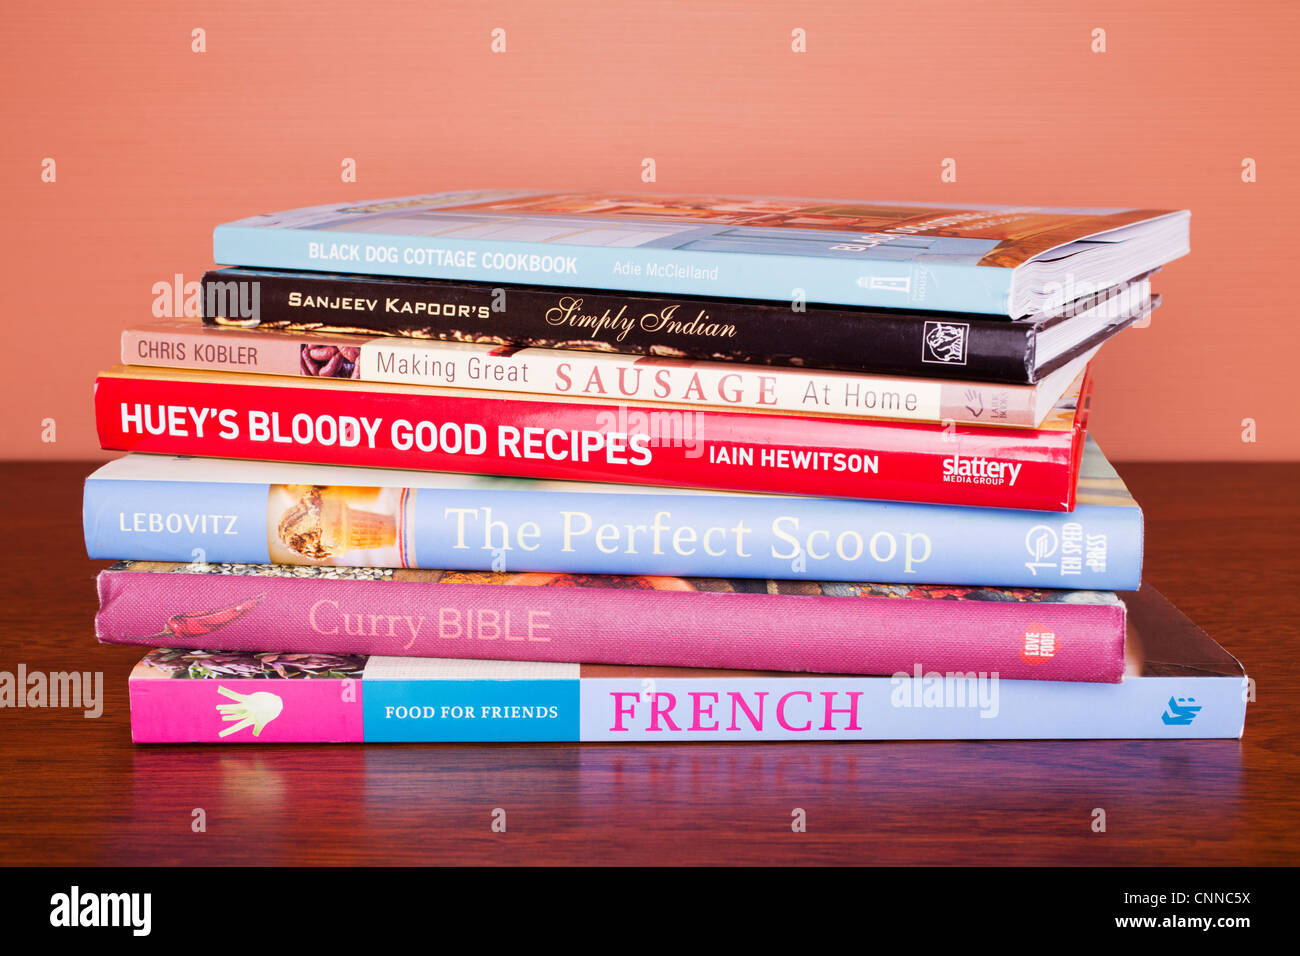 Pile of cookbooks on a table. - Stock Image